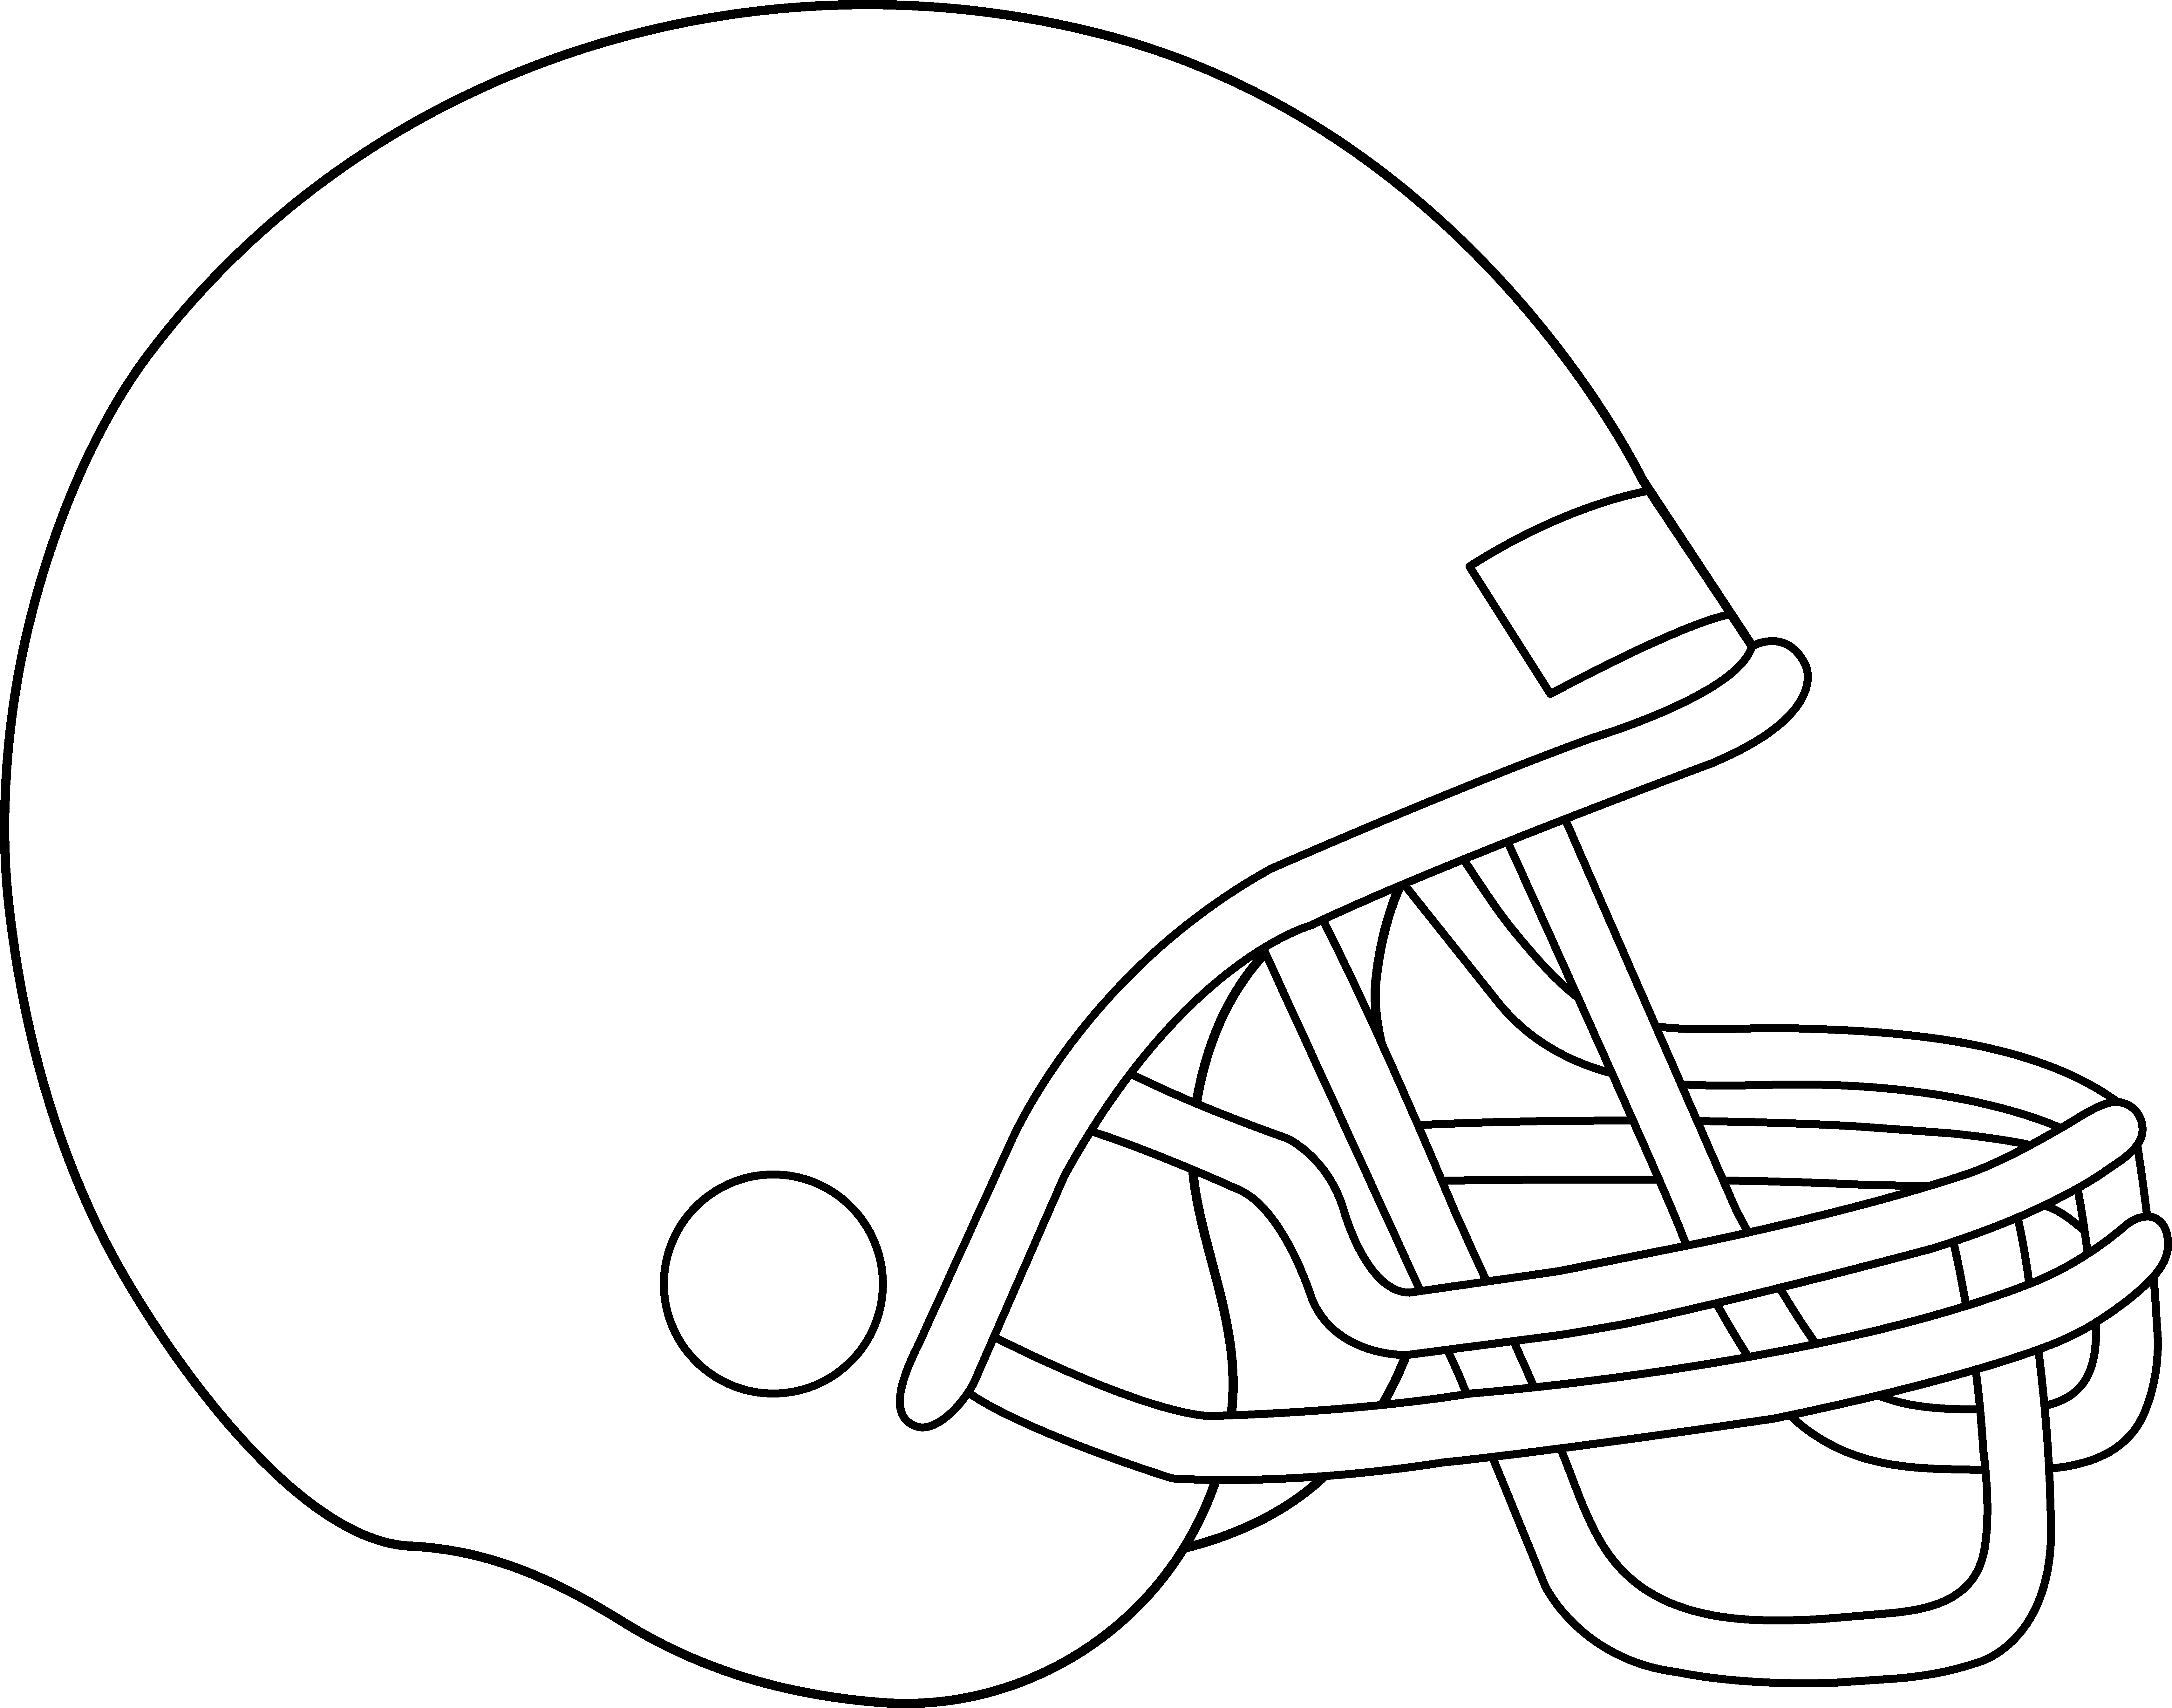 Football page clipart outline clip art transparent library Football Teams Coloring Pages - Eskayalitim clip art transparent library